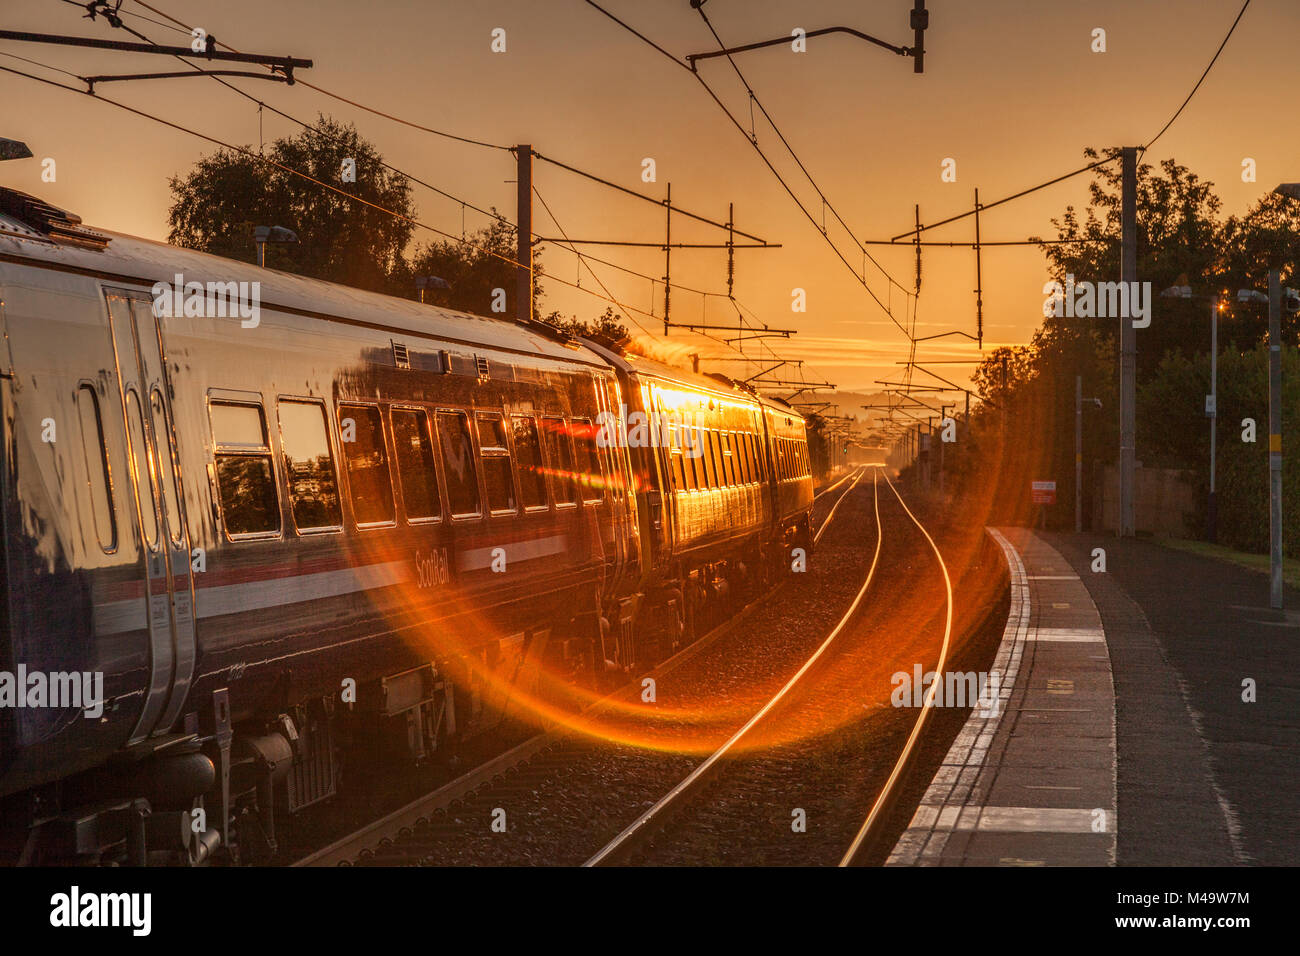 ScotRail train at station, early morning. - Stock Image